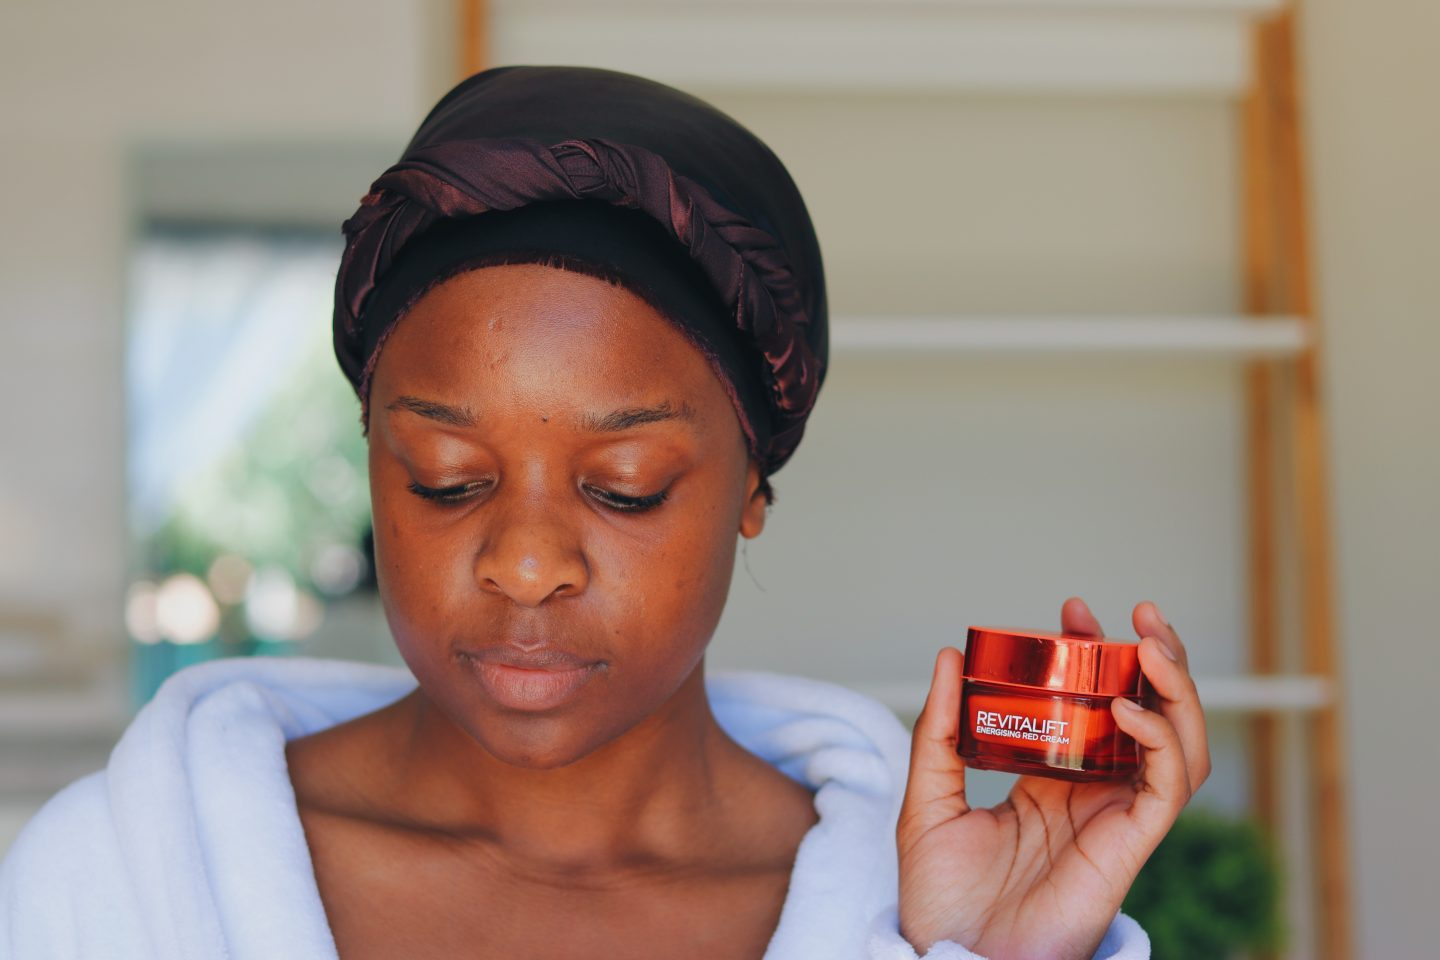 My #GlowUp Using the L'Oreal Revitalift Energizing Red Cream | Review